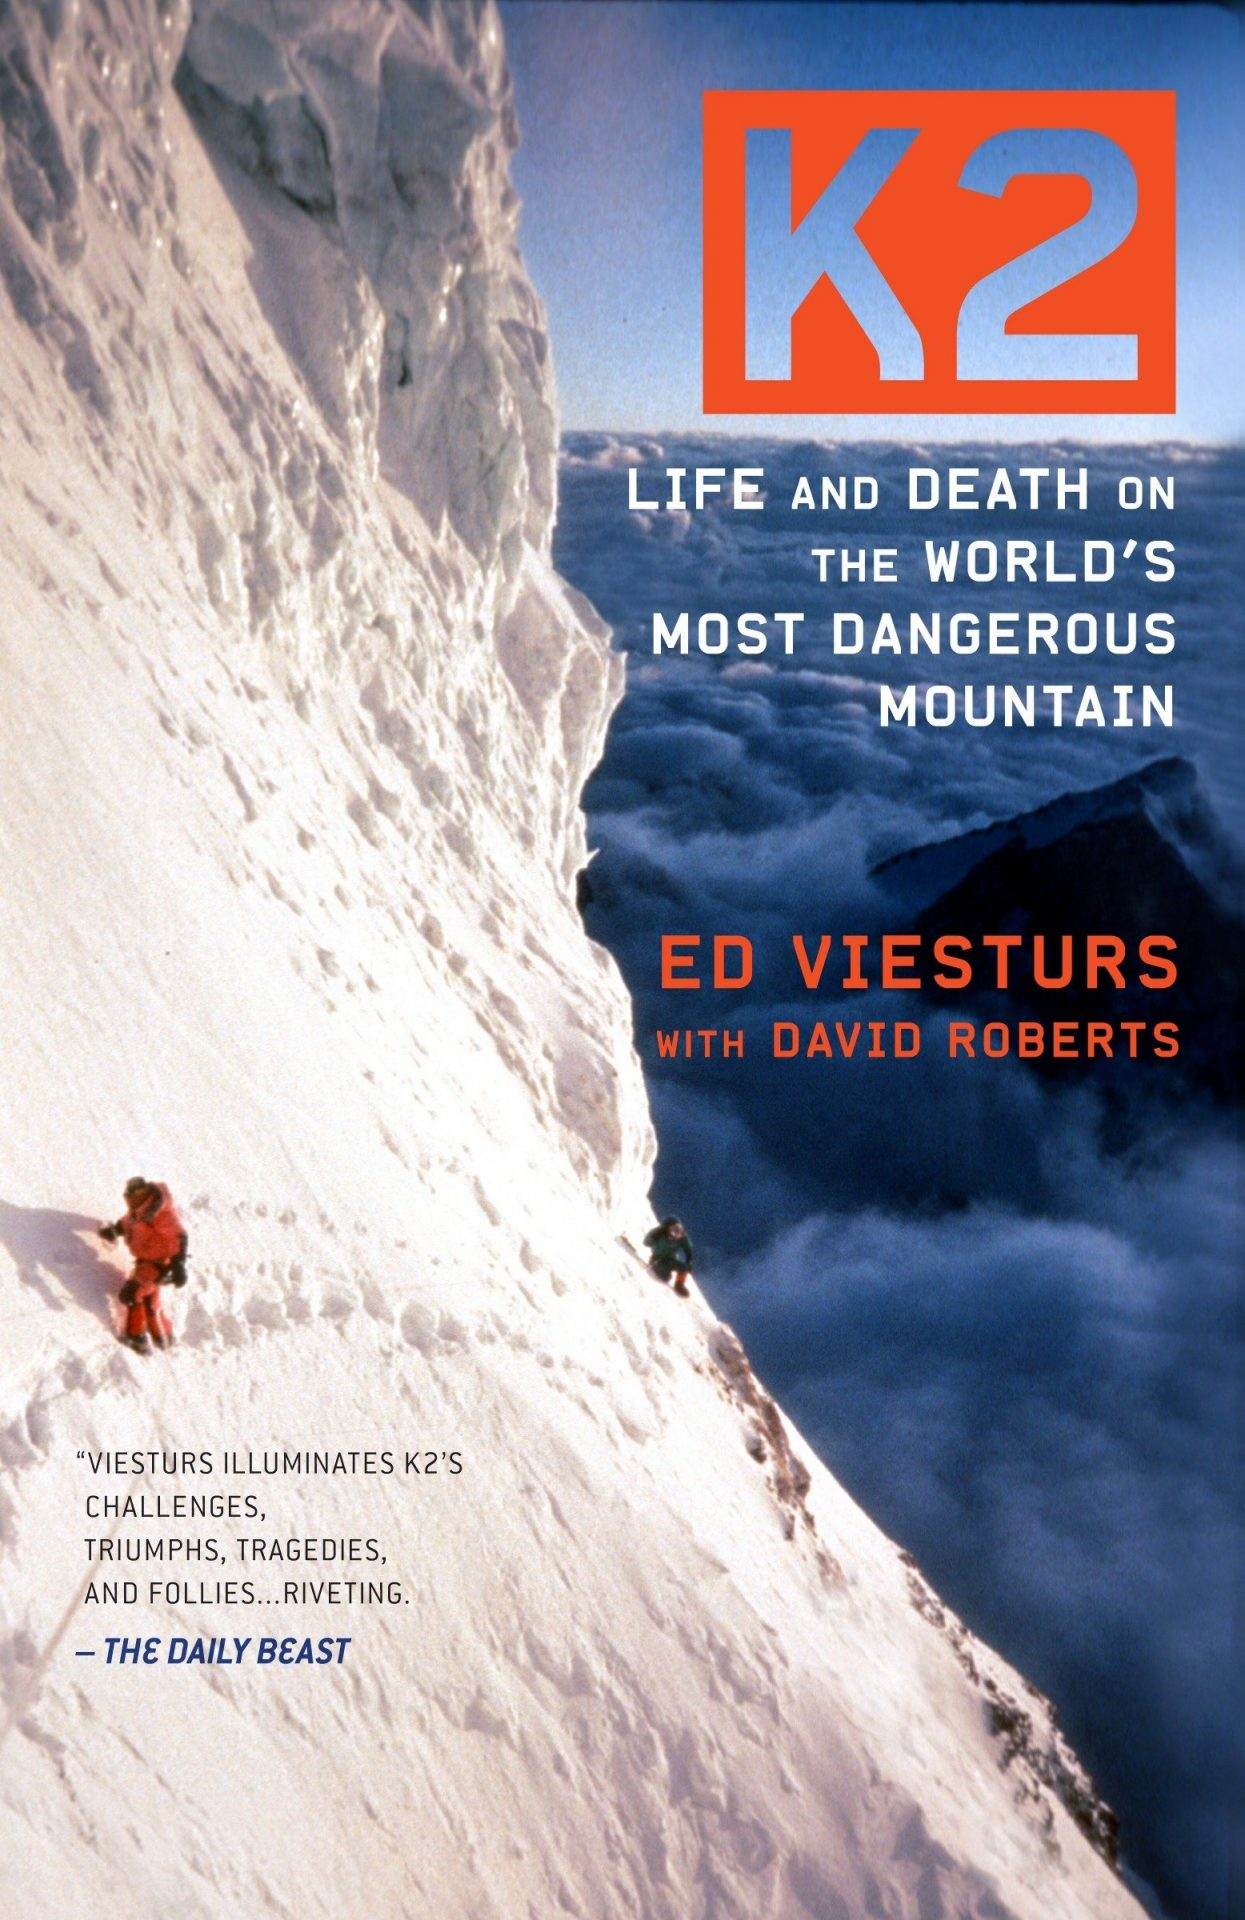 Life and Death on the World's Most Dangerous Mountain